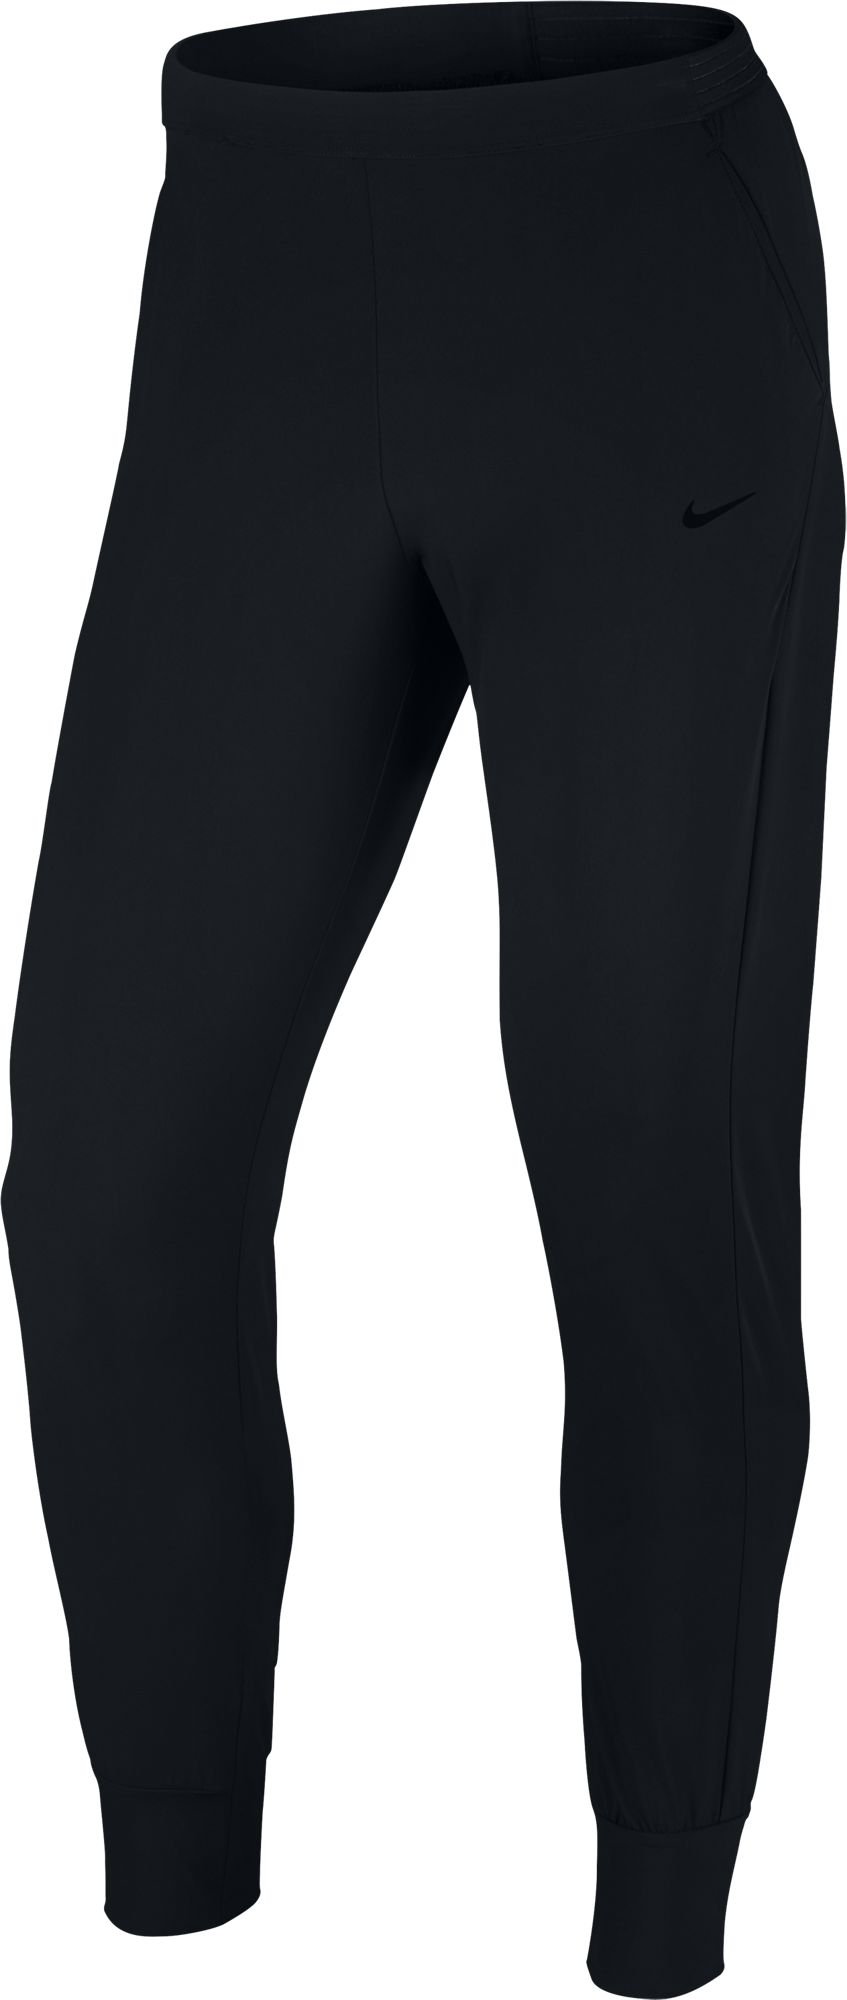 Nike Flex Training Pant Skinny Bliss W